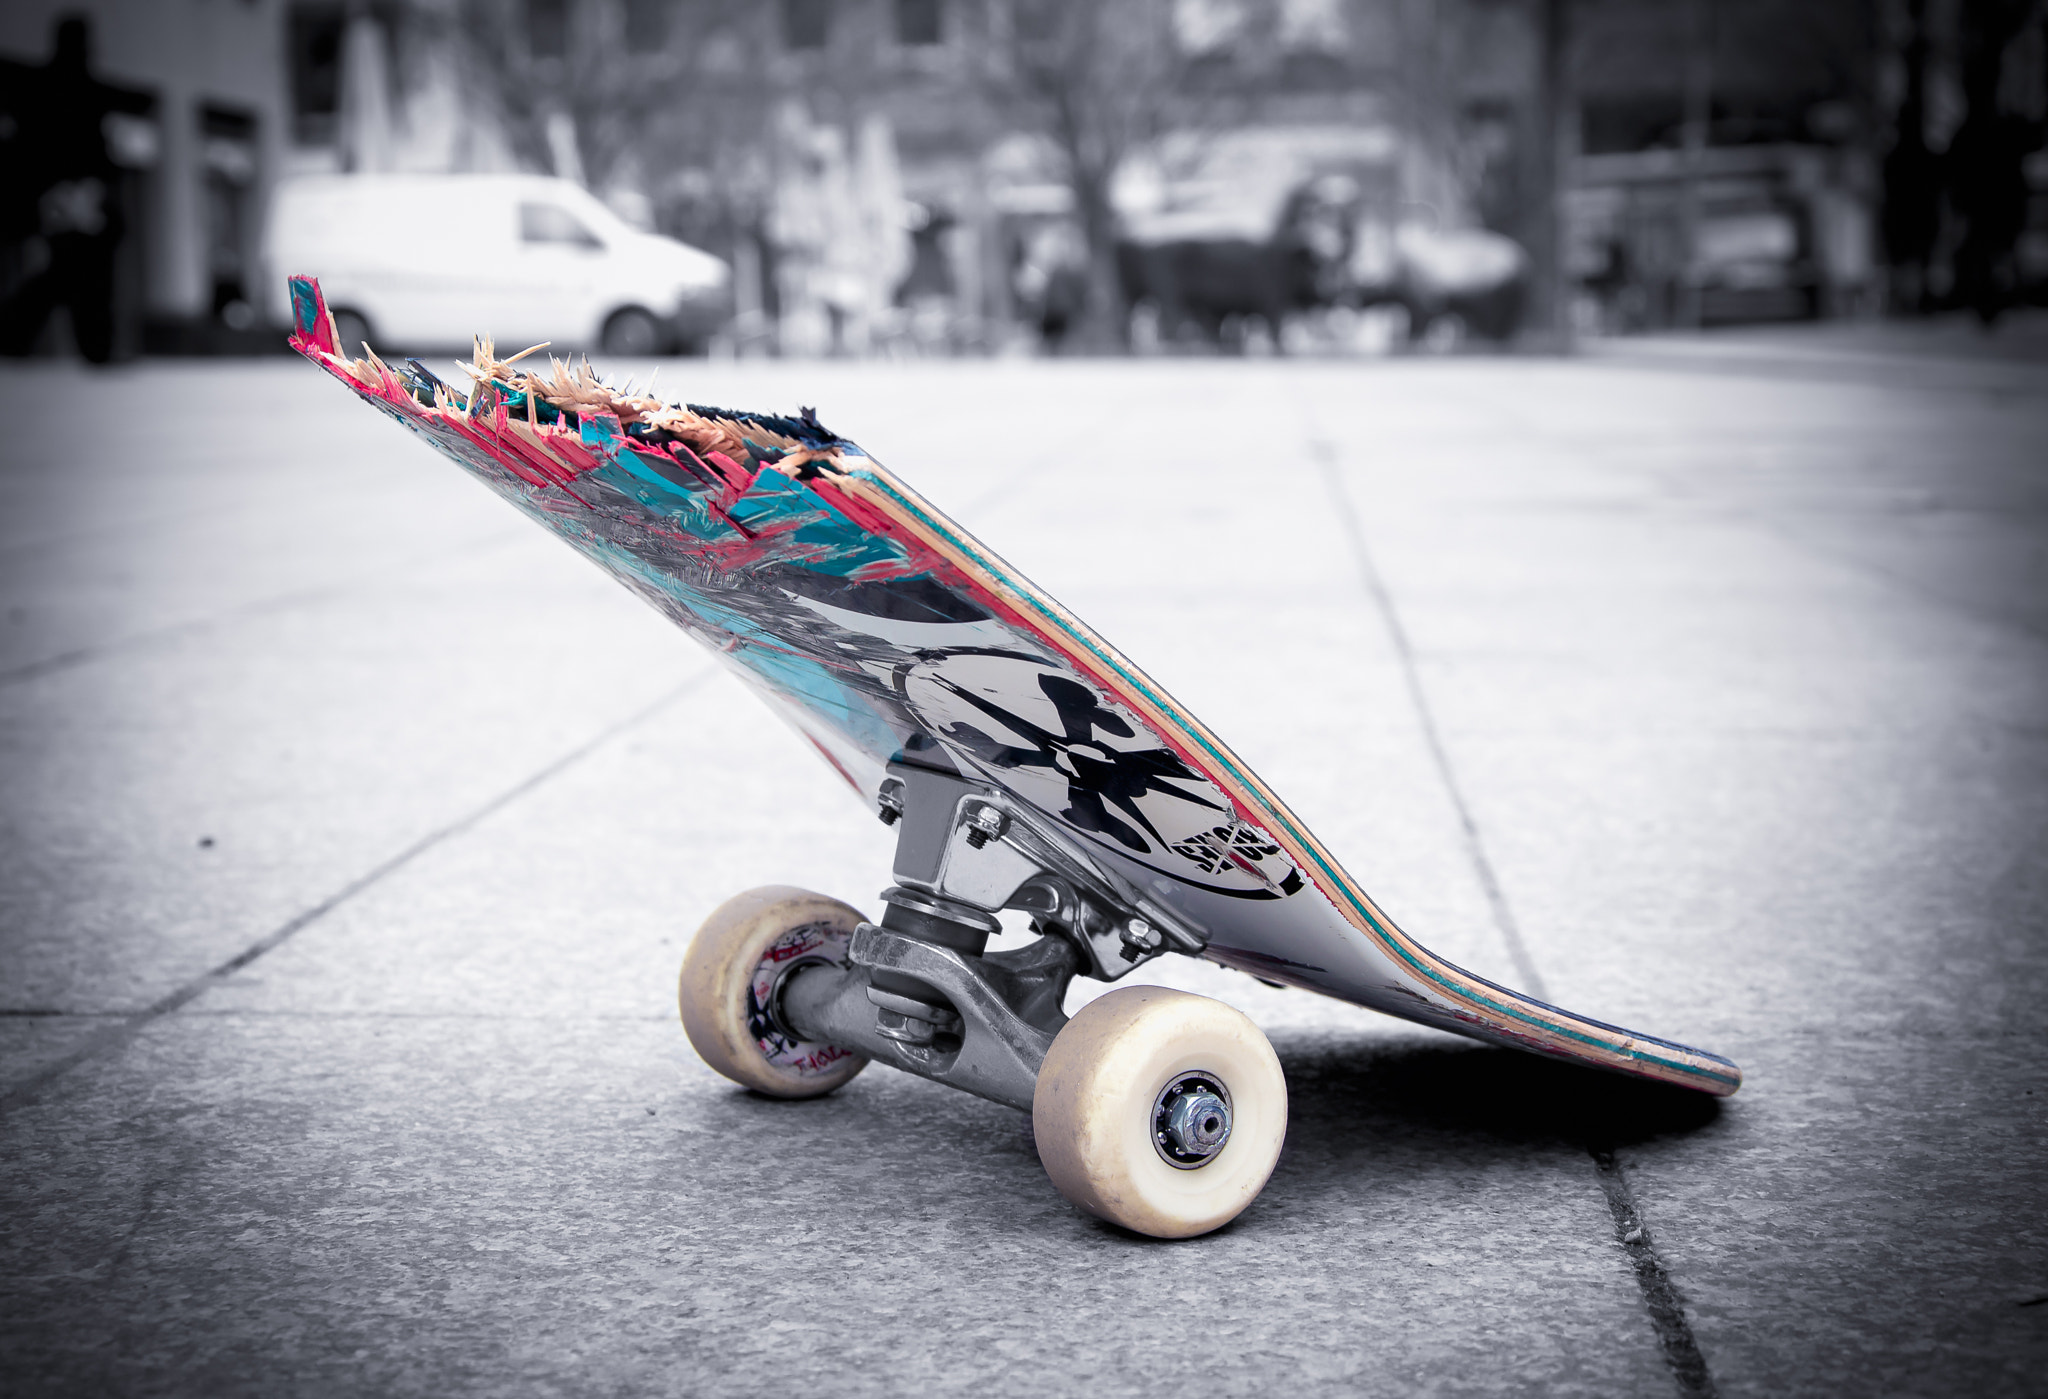 Photograph Skate or Die by Tom Maxim on 500px